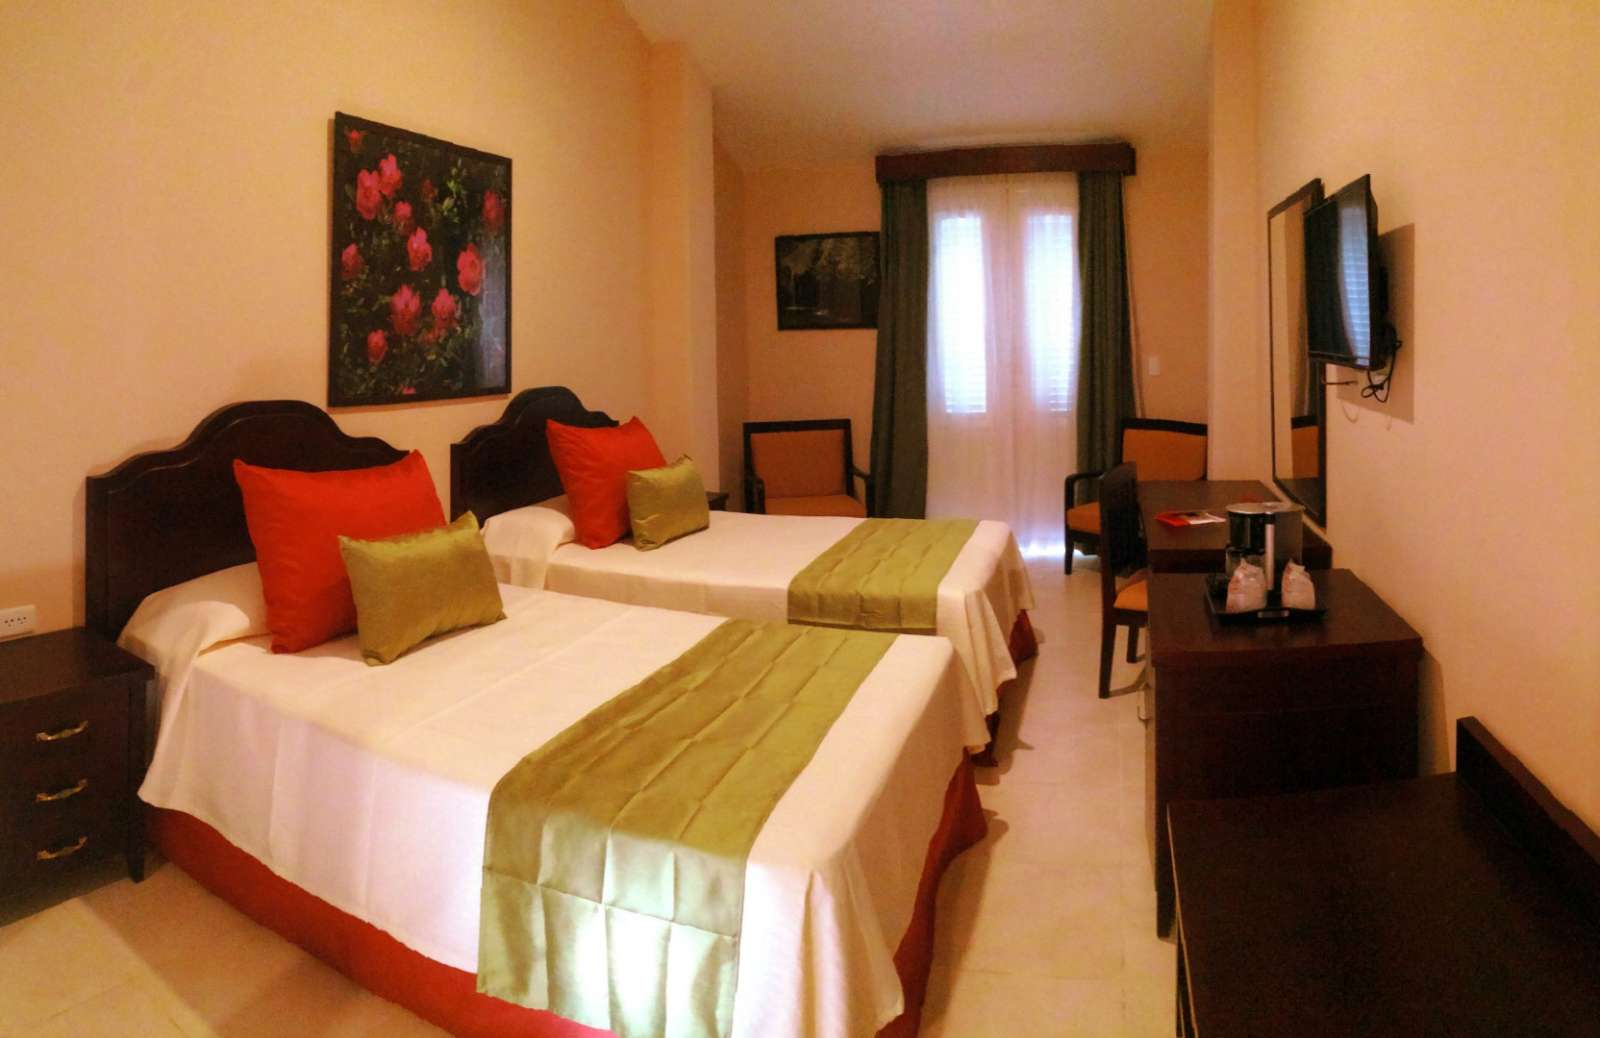 Twin room at Hotel Central in Vinales, Cuba